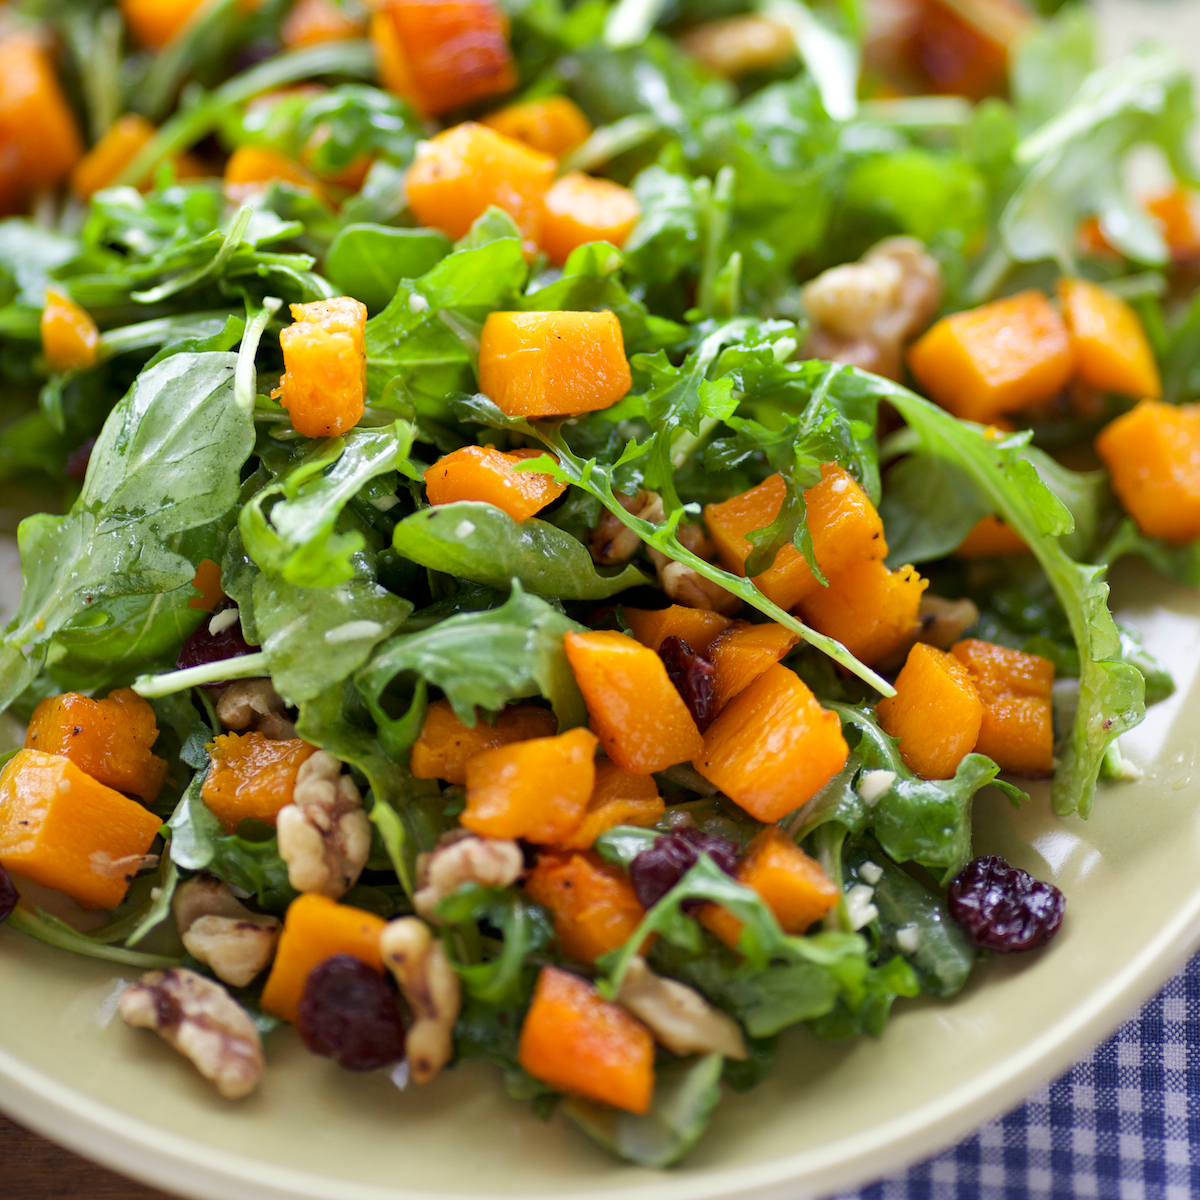 Roasted Butternut Squash Salad with Bitter Greens and Walnuts